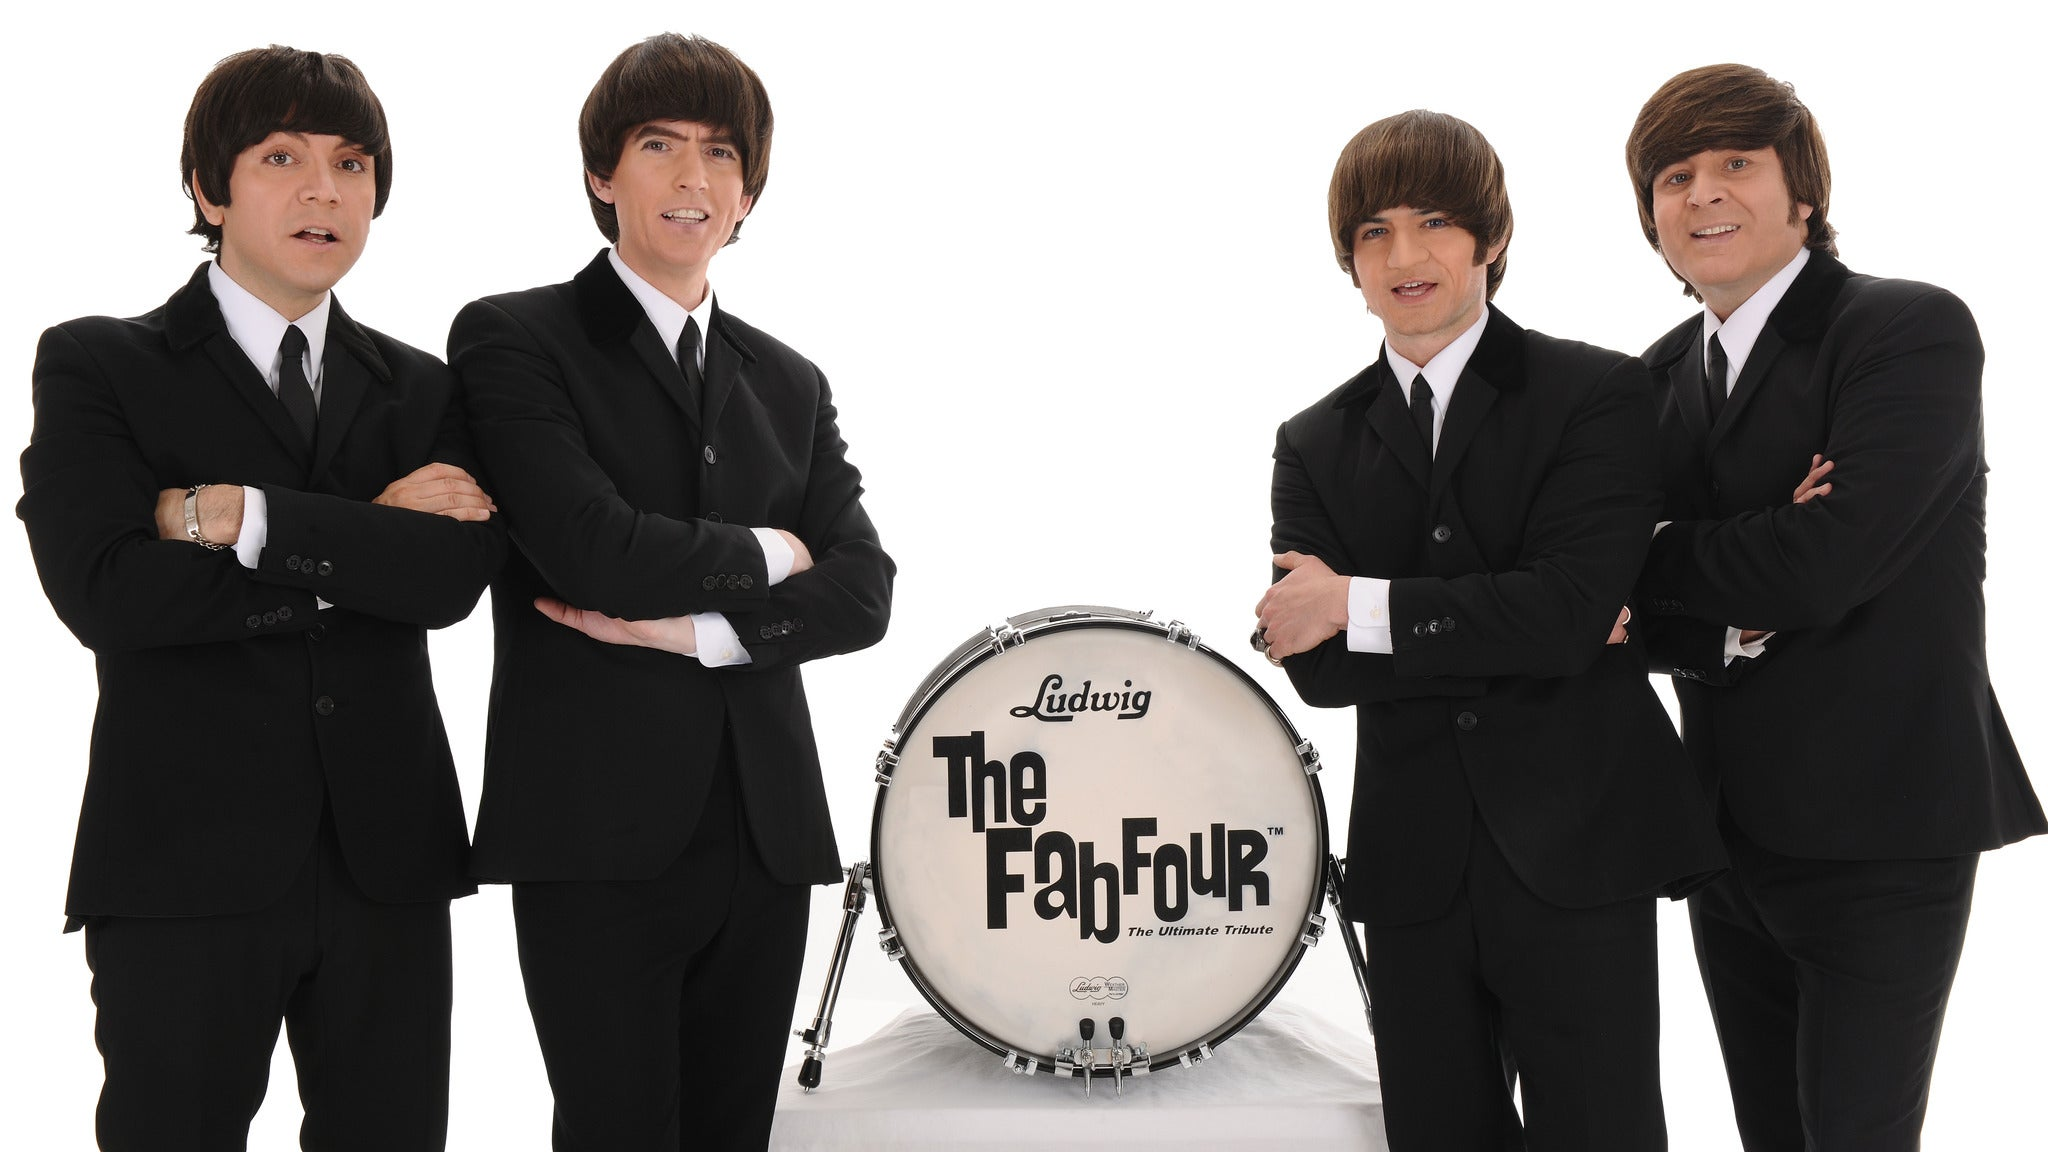 The Fab Four - The Ultimate Tribute at The Egyptian Theatre